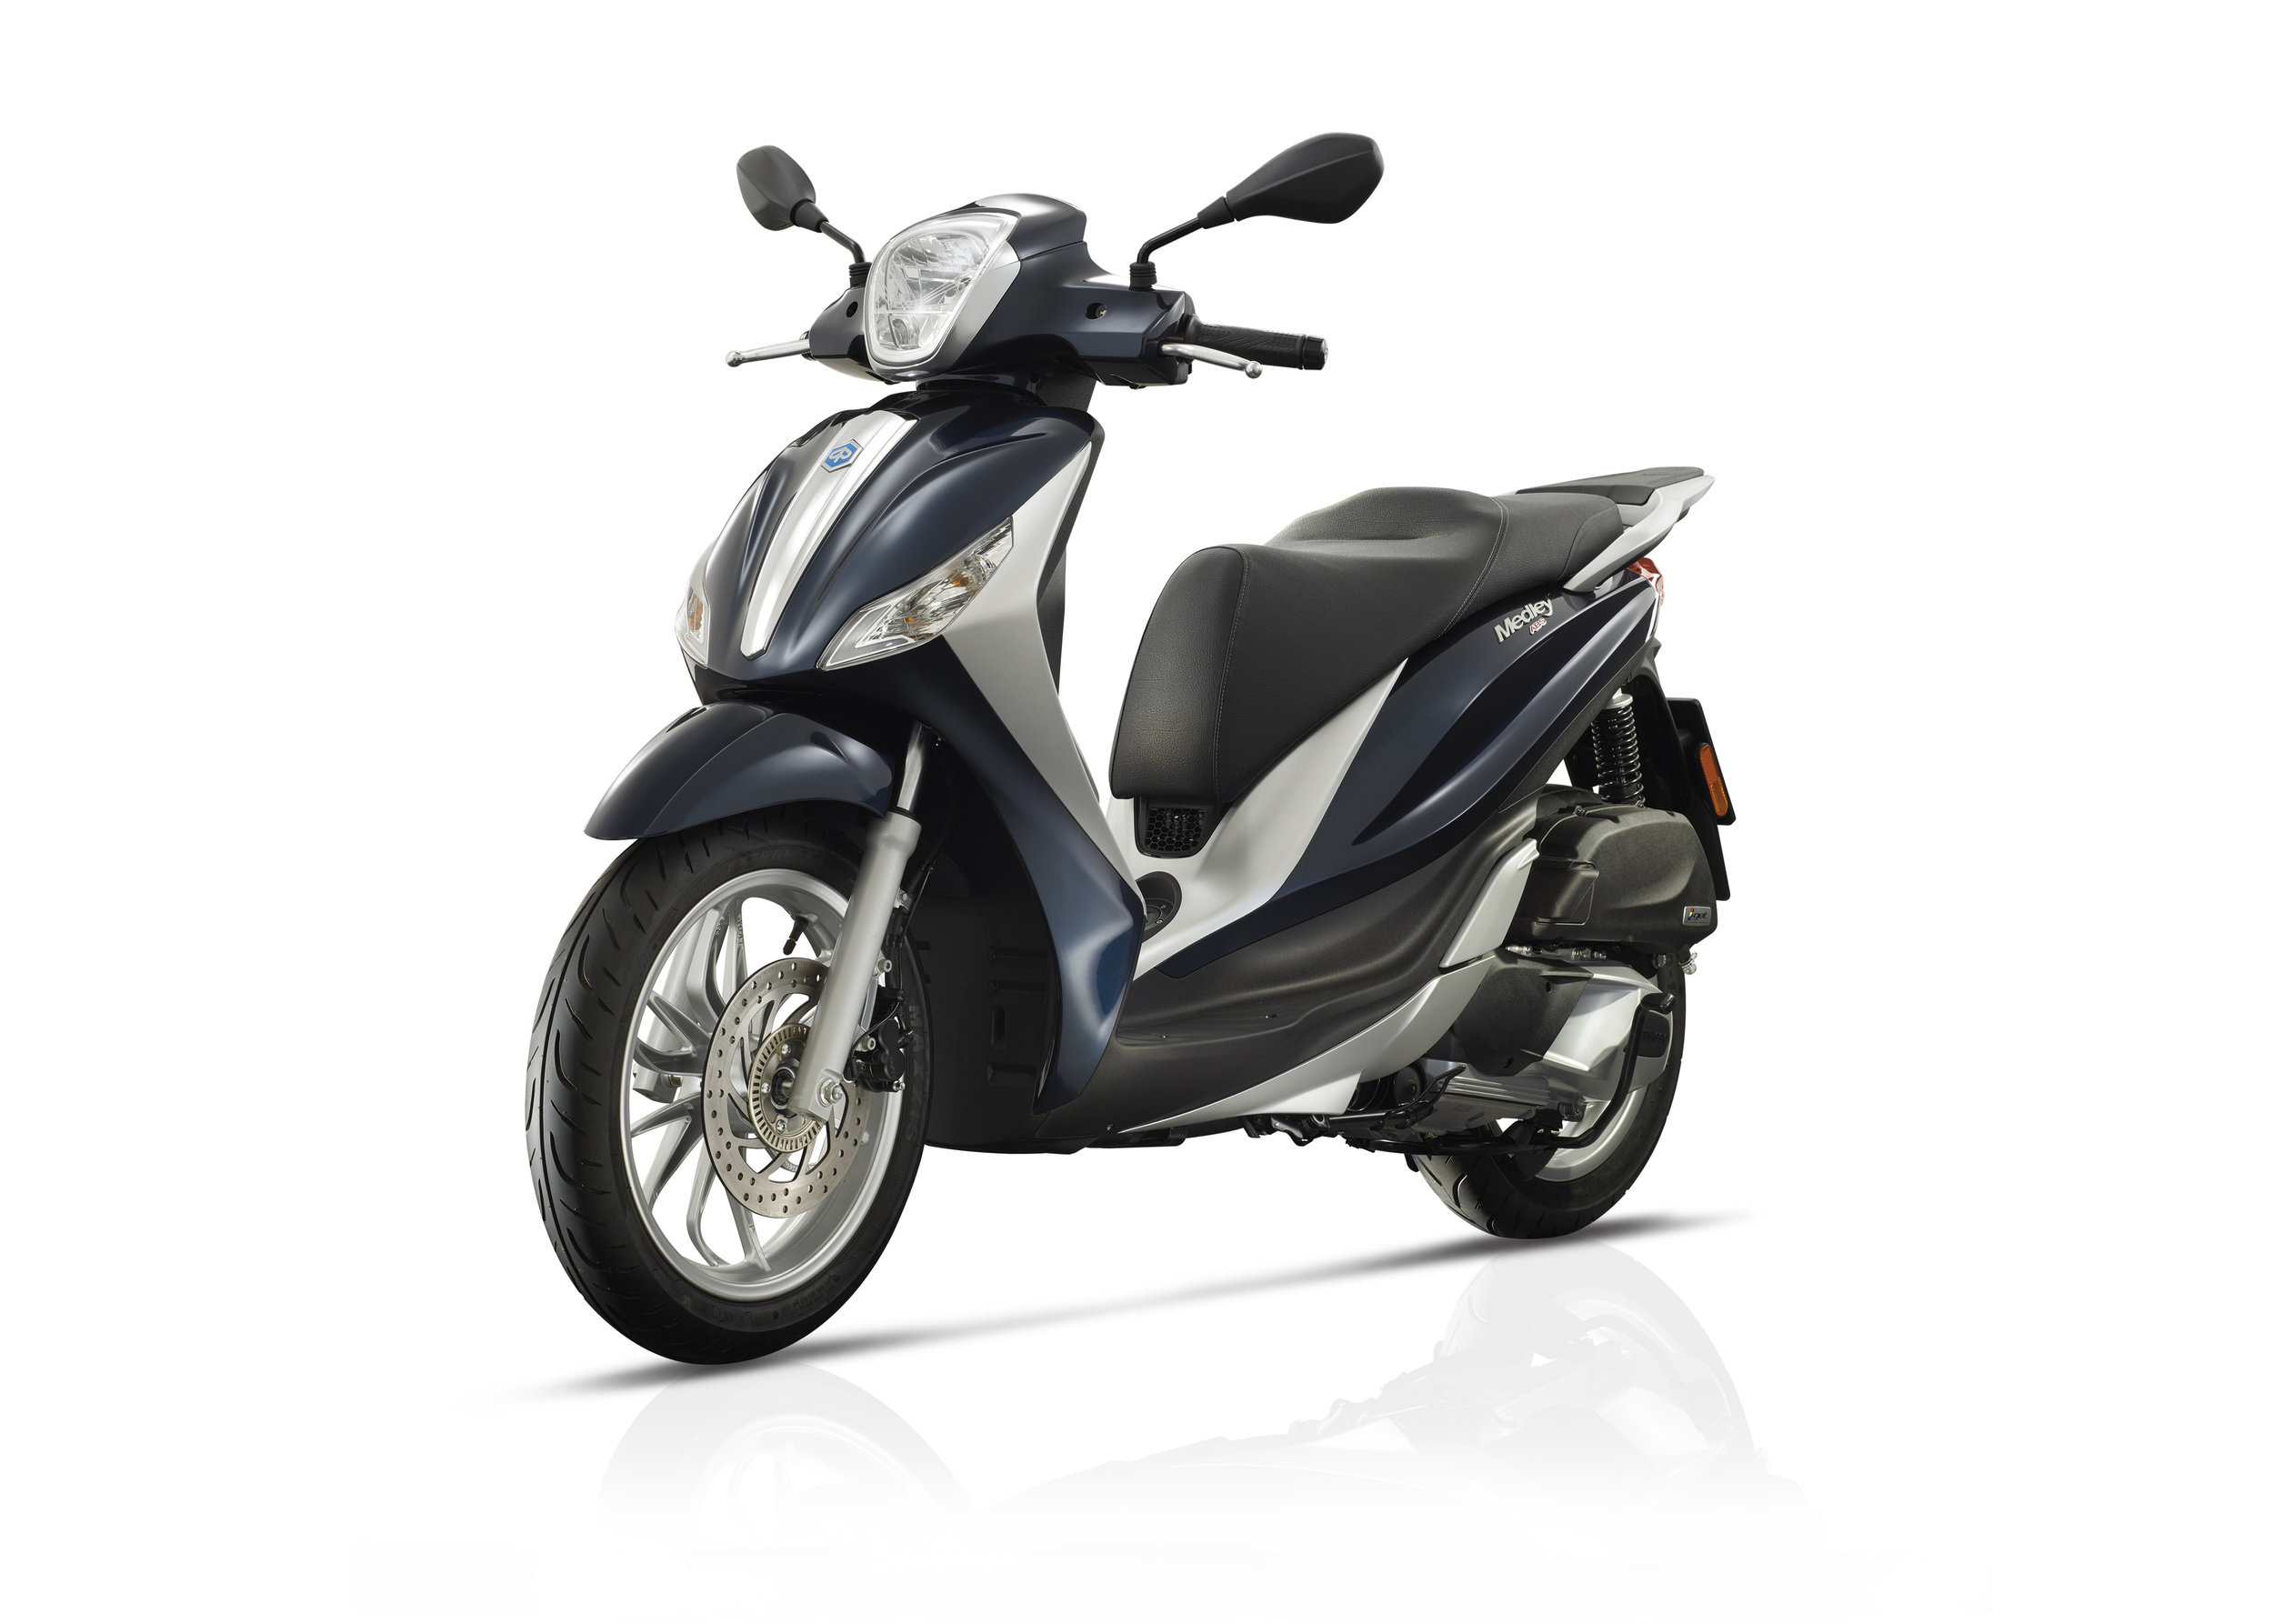 Piaggio Medley 125 equipped lateral dx 10.jpg